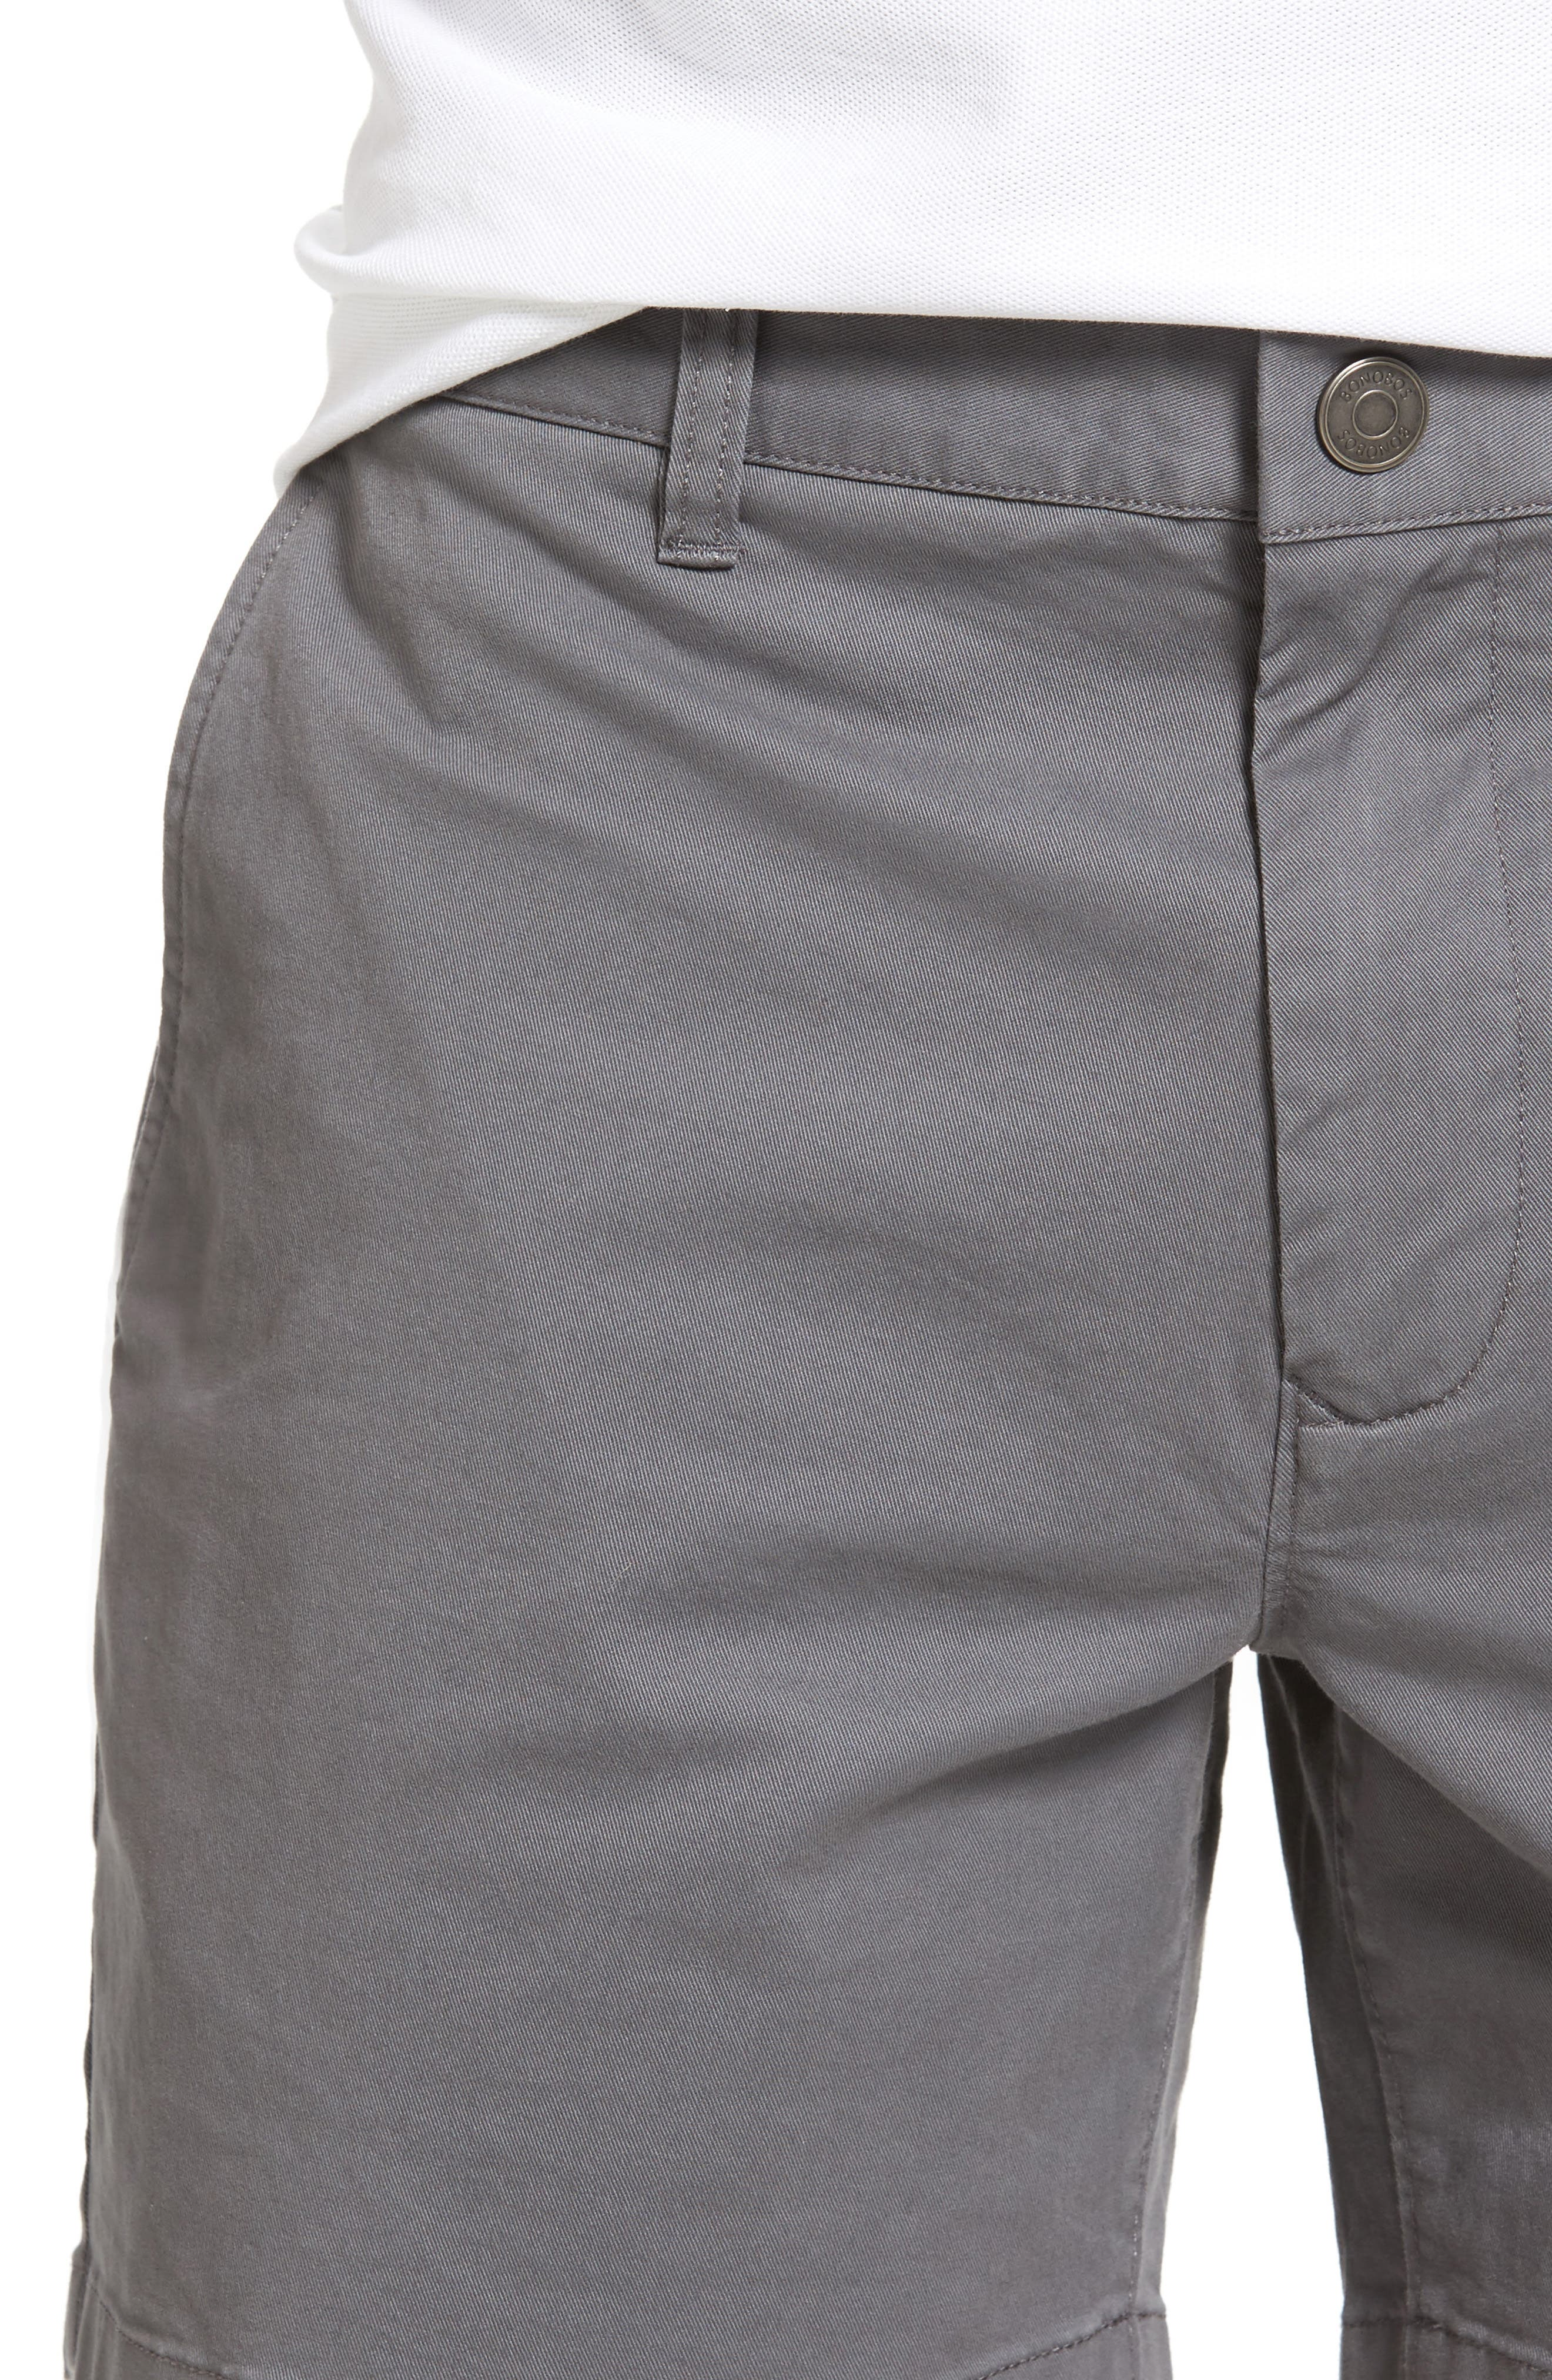 Stretch Washed Chino 5-Inch Shorts,                             Alternate thumbnail 104, color,